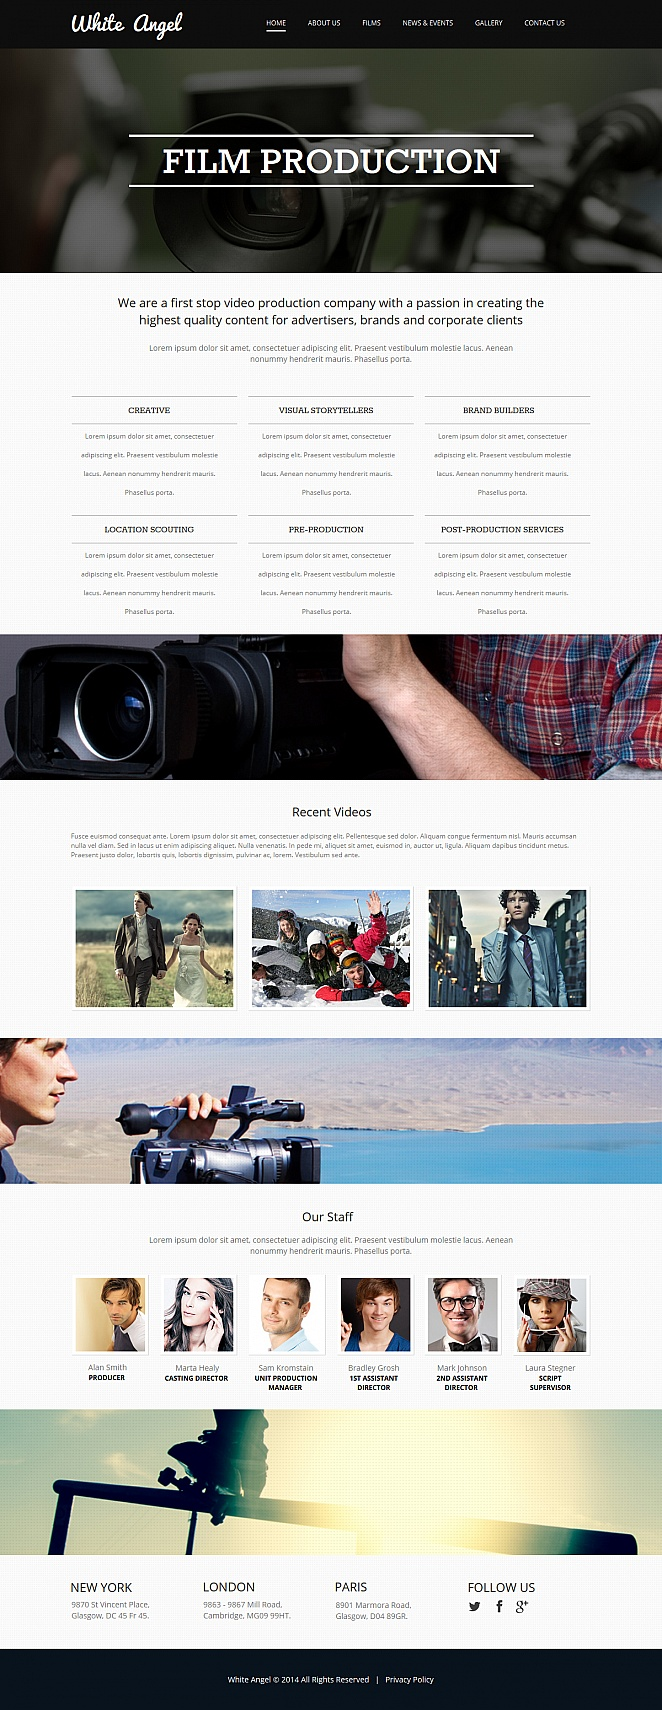 Film Production Website Template with Large Home Page Design - image